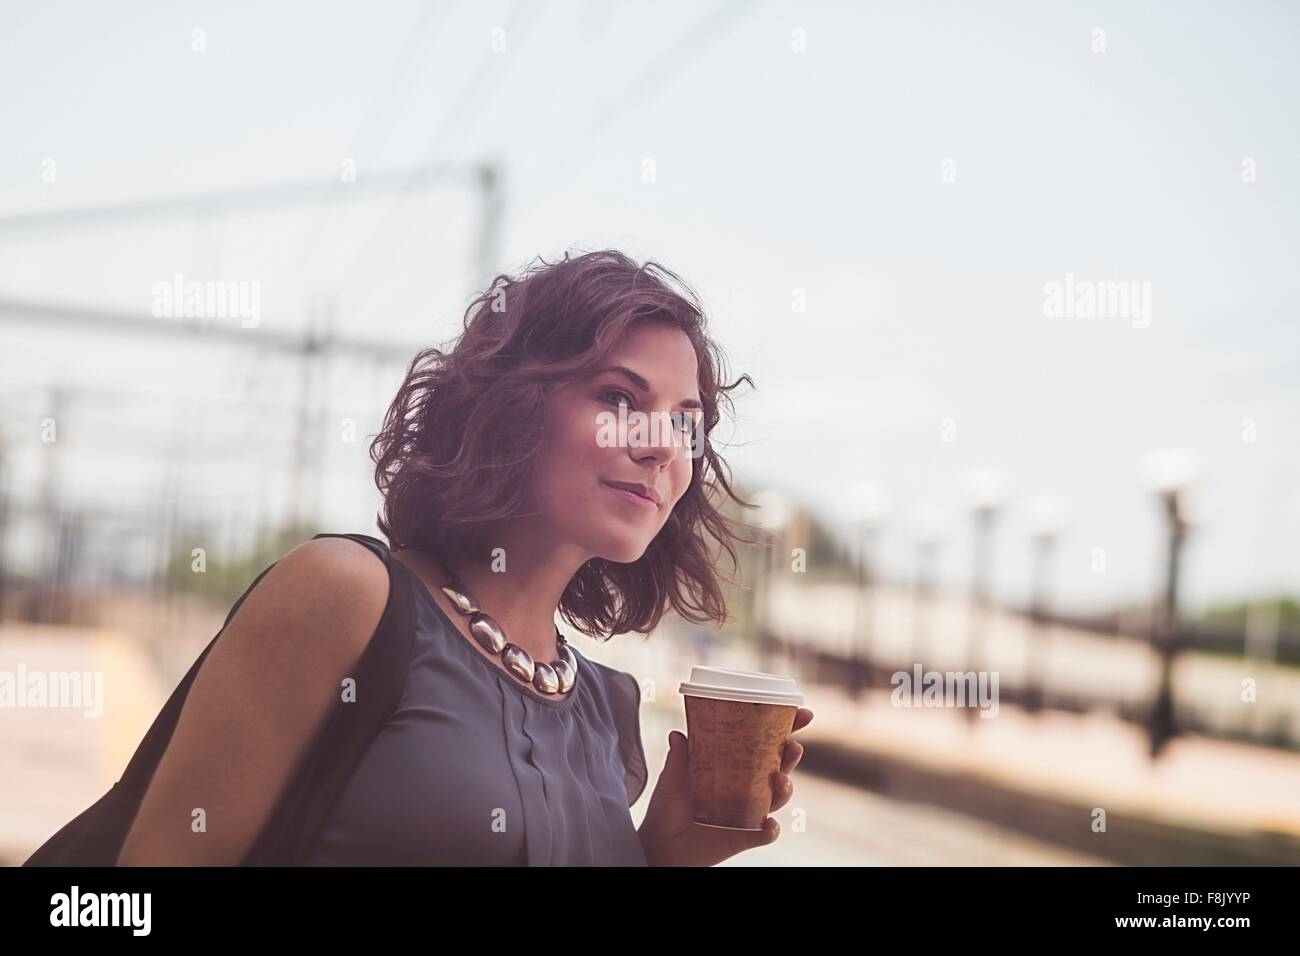 Mid adult woman waiting at train station, holding coffee cup - Stock Image